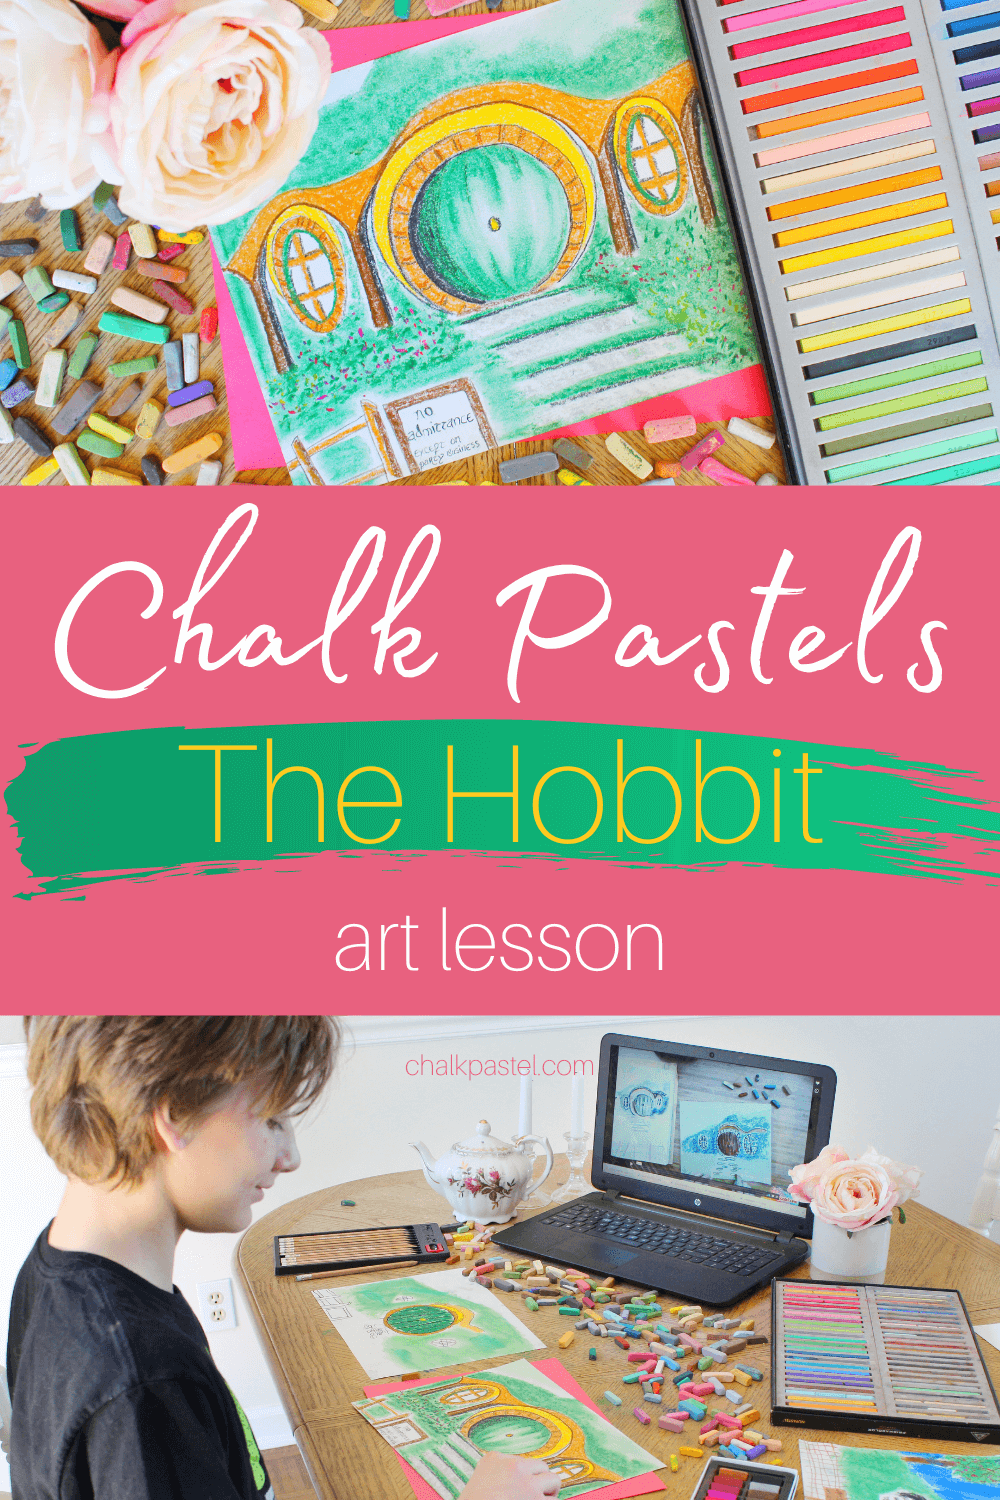 Chalk Pastels The Hobbit Art Lesson: Do your kiddos love the fantasy and adventure of  J. R. R. Tolkien's The Hobbit? Then, The Hobbit art lesson with Nana and chalk pastels are for you! #chalkpastel #YouAREAnArtist #TheHobbit #TheHobbitartlesson #TheHobbitchalkpastellesson #chalkpastellessons